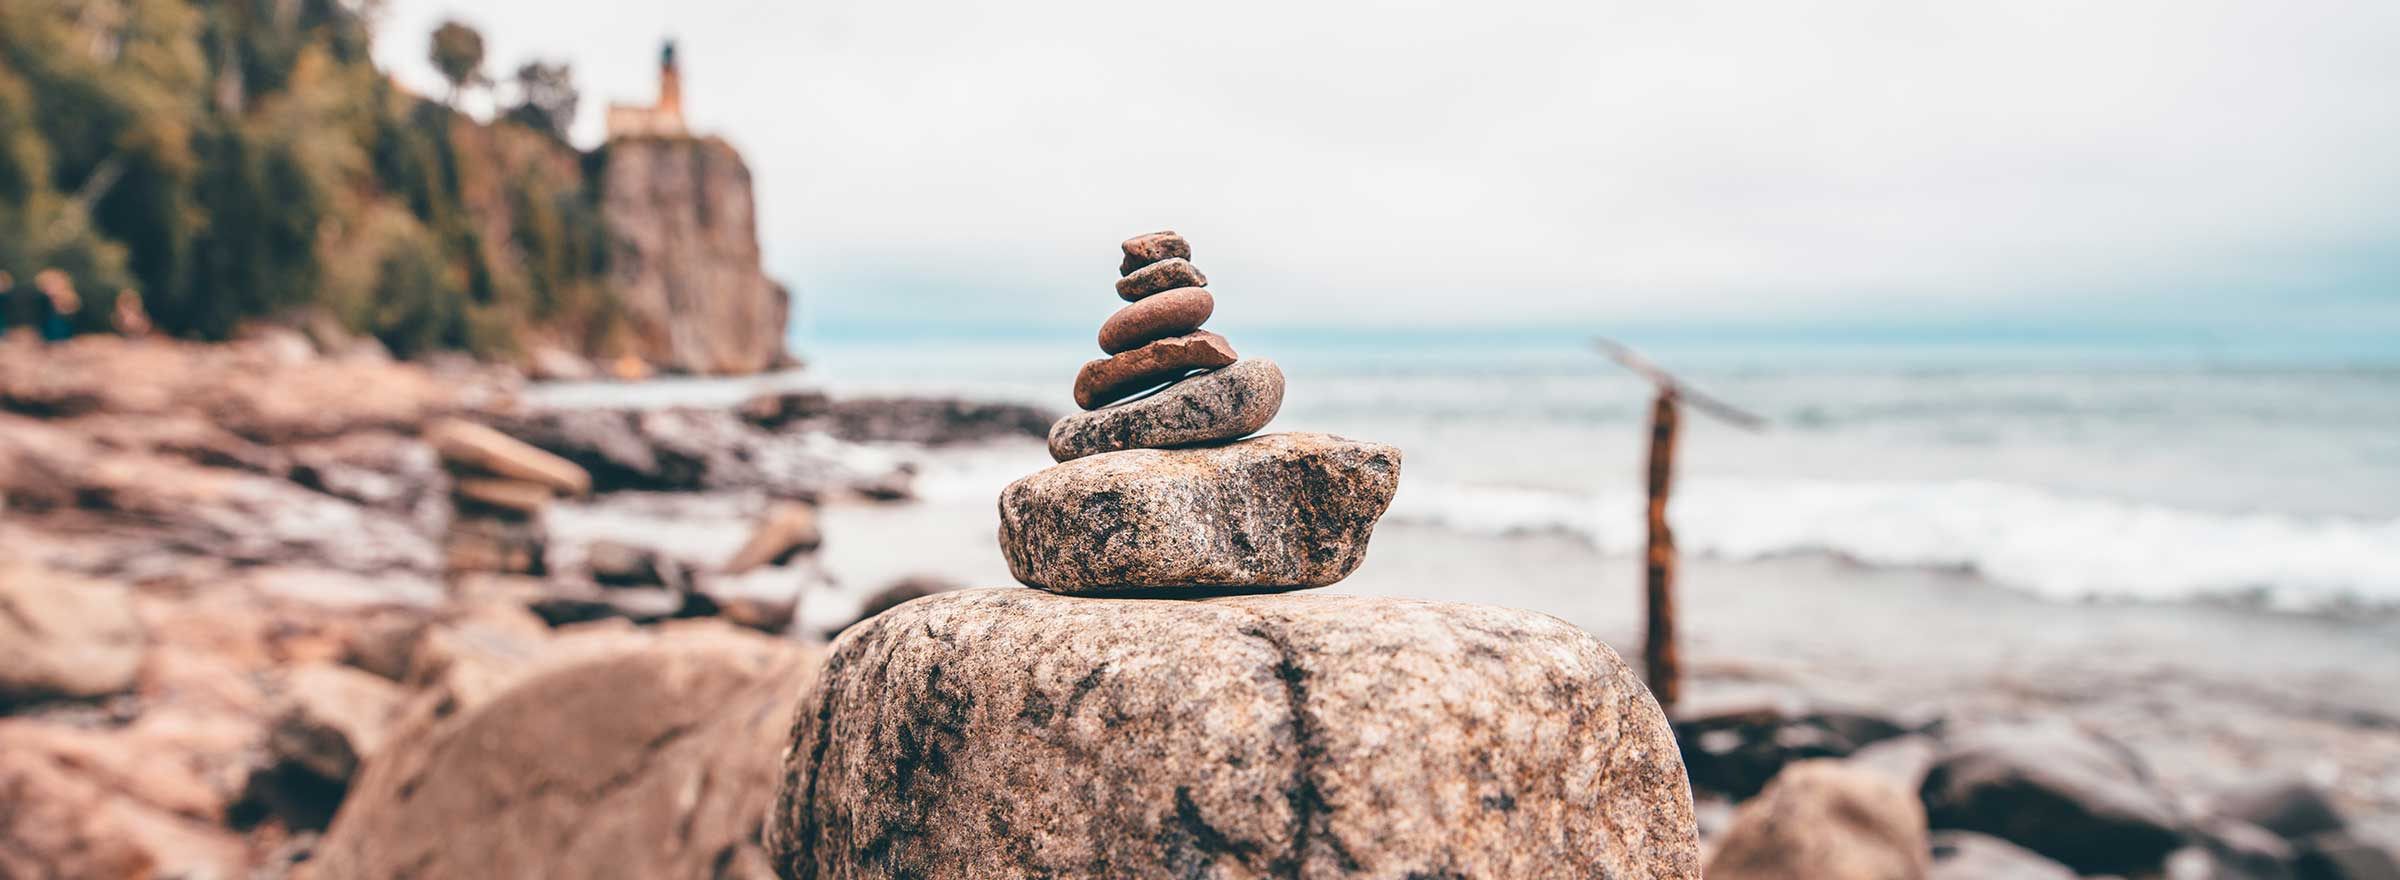 a cairn of piled rocks, symbolizing the way toward nonprofit stability and sustainability